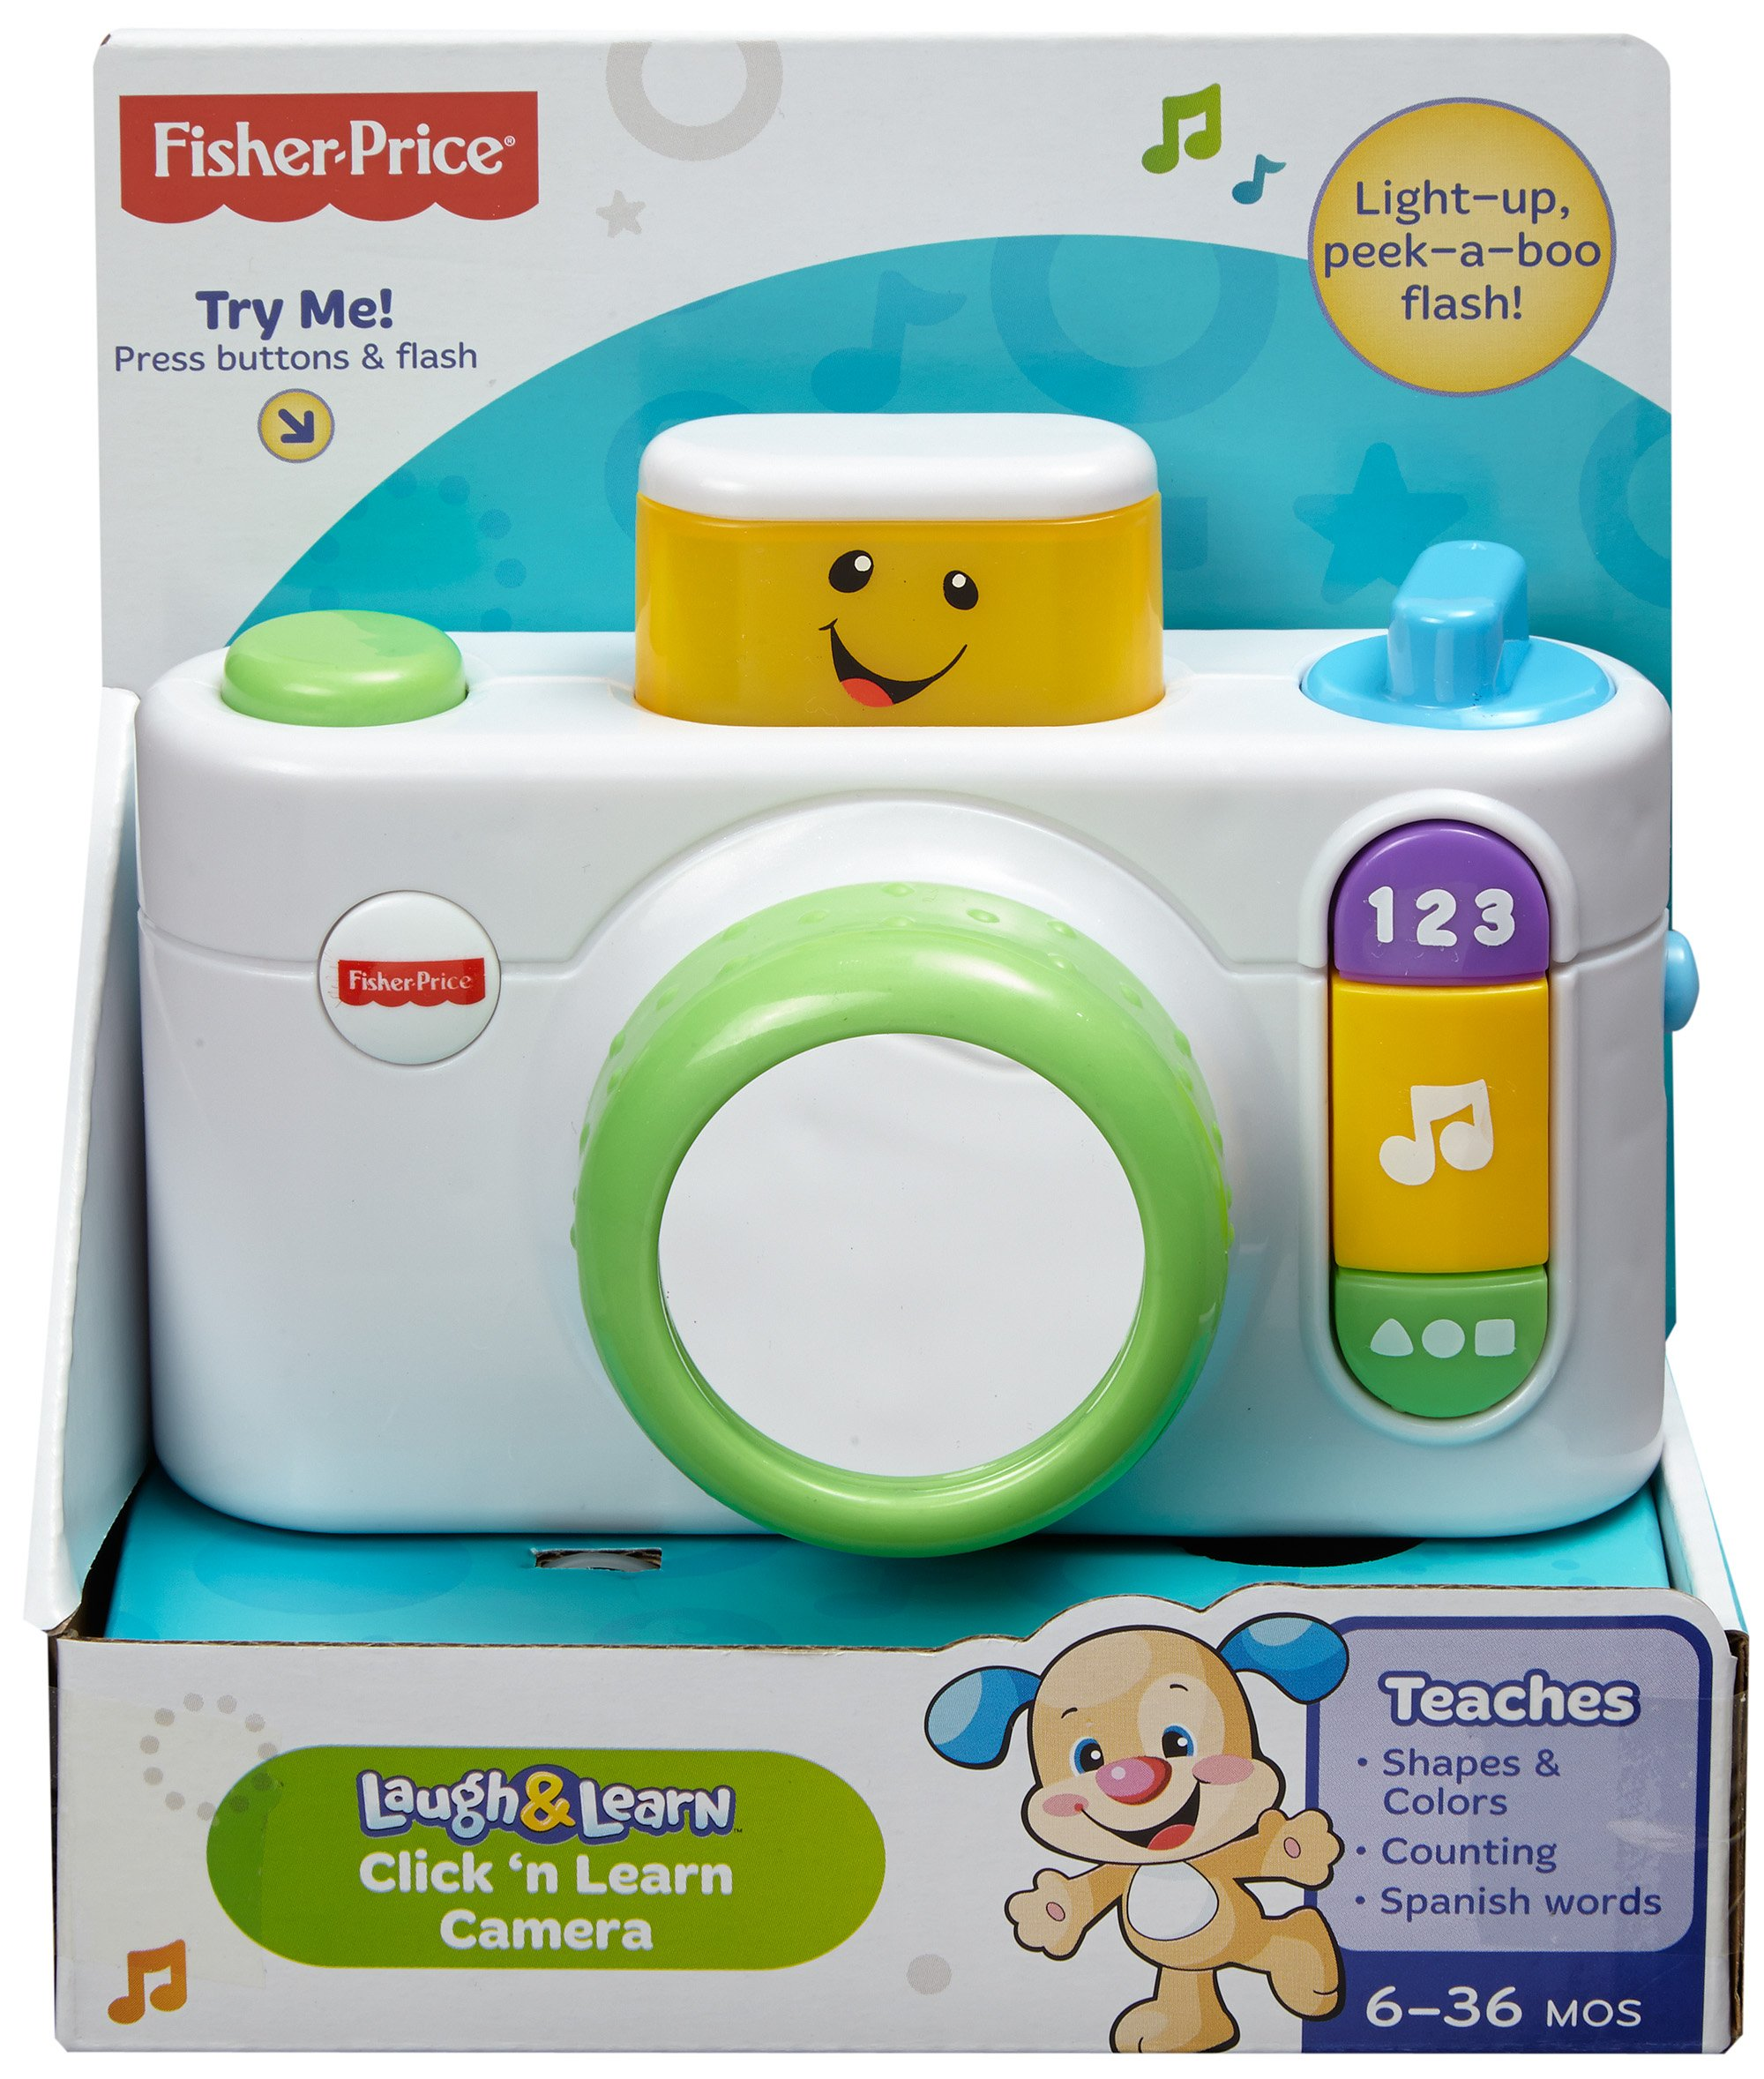 Fisher-Price Laugh & Learn Click 'n Learn Camera, White by Fisher-Price (Image #6)